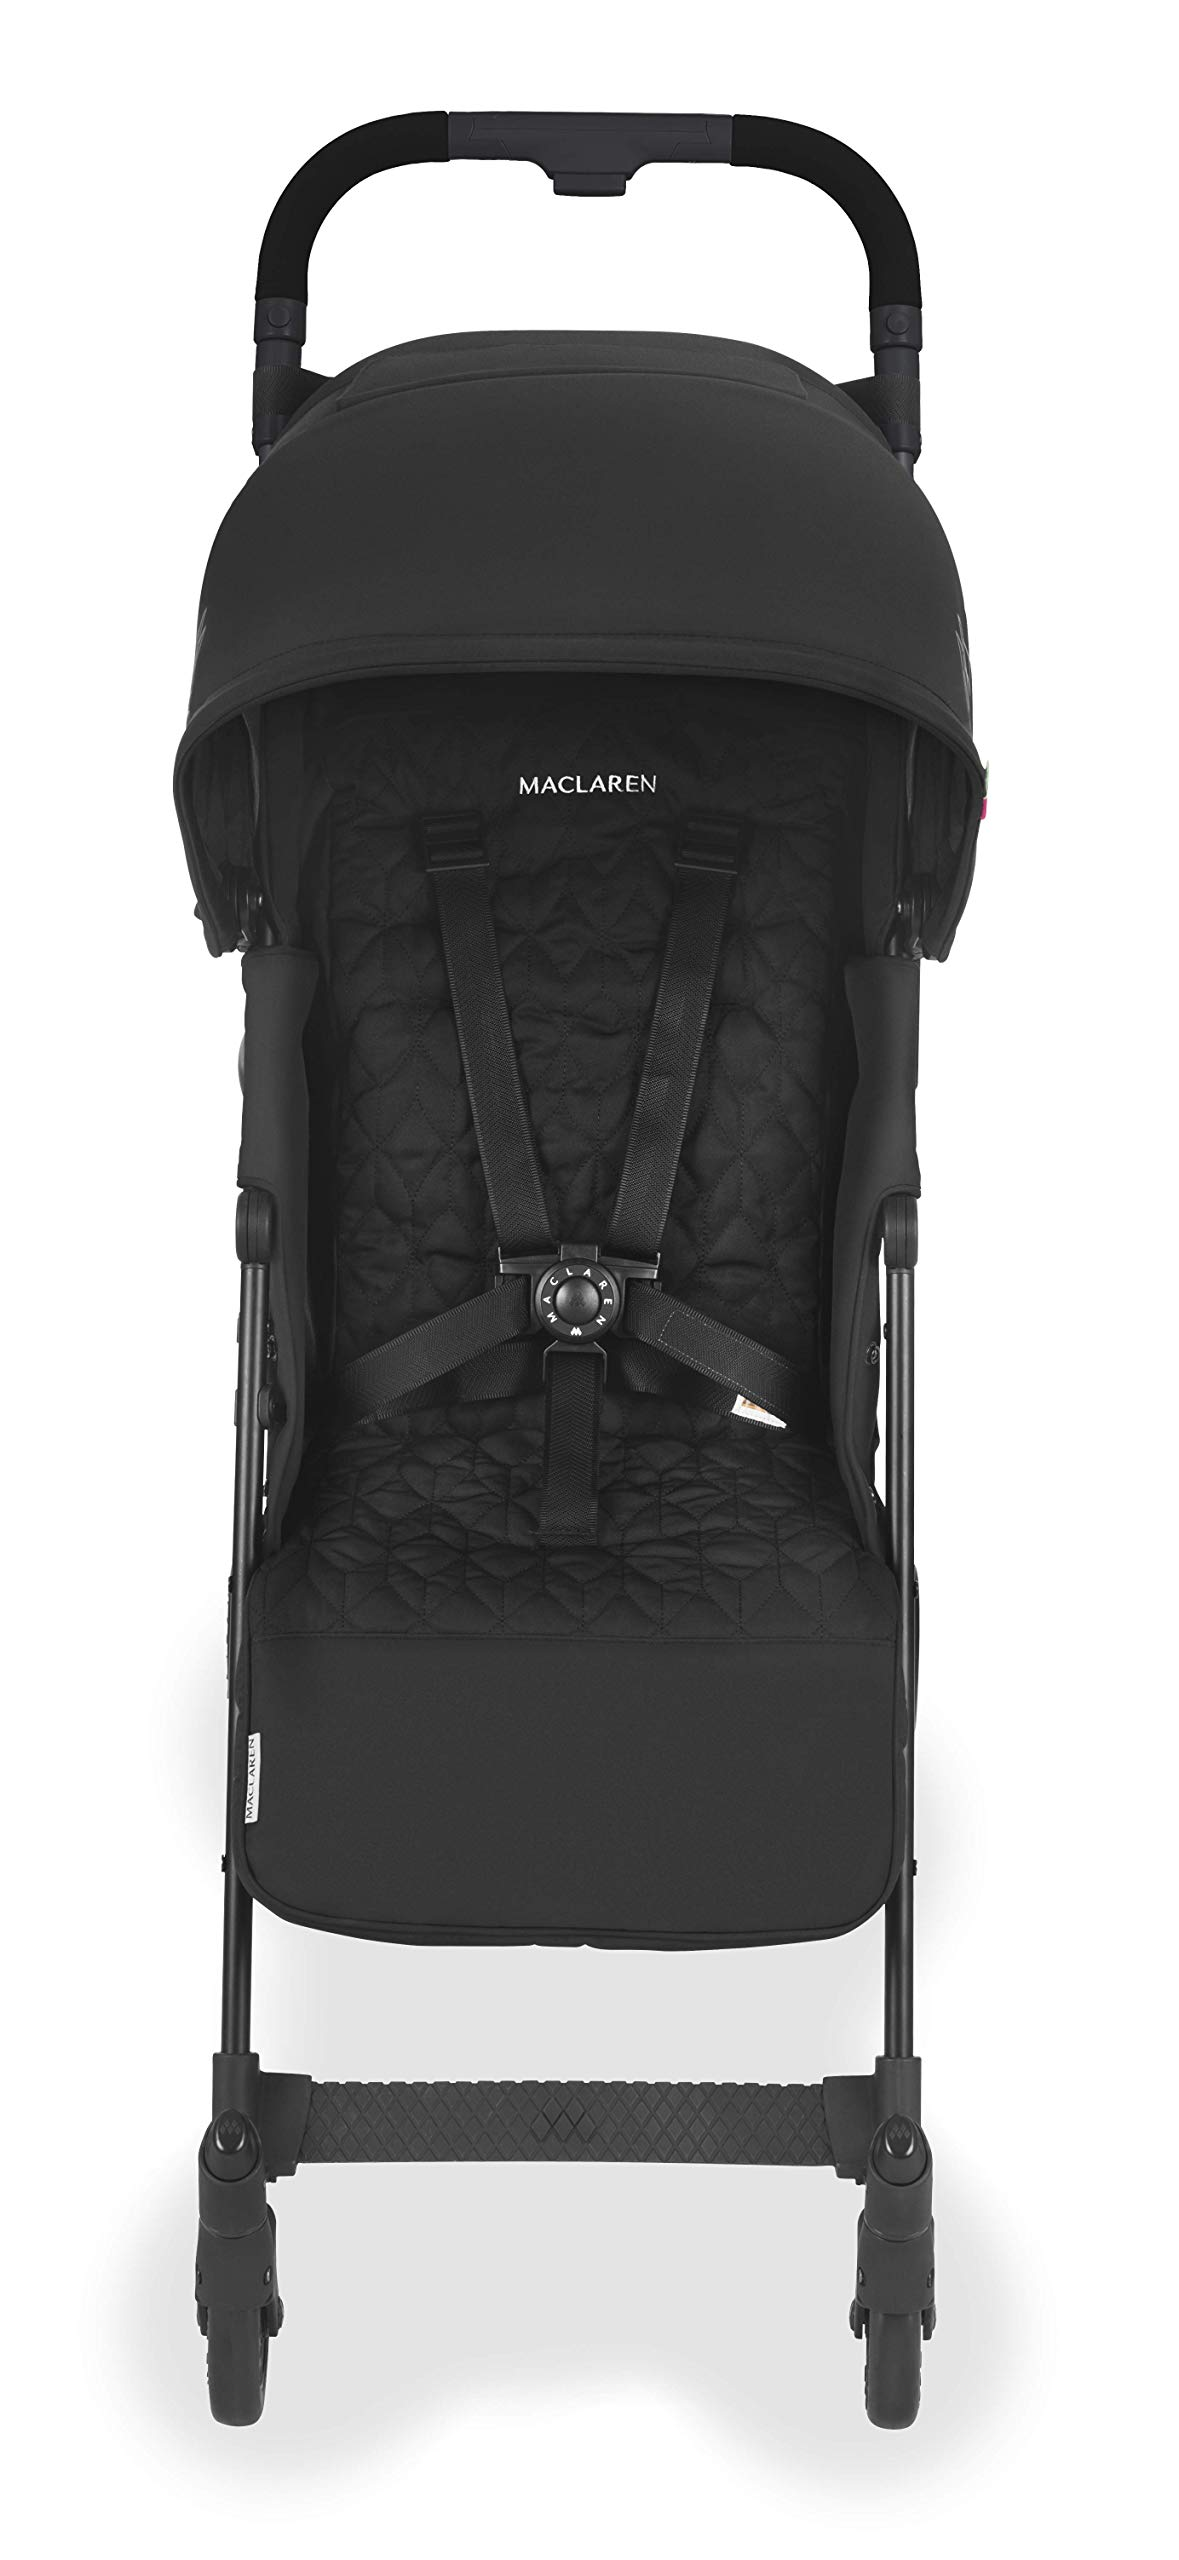 Maclaren Quest Arc Stroller- Ideal for Newborns up to 25kg with extendable UPF 50+/Waterproof Hood, Multi-Position seat and 4-Wheel Suspension. Maclaren Carrycot Compatible. Accessories in The Box Maclaren Lightweight and compact. ideal for newborns and children up to 25kg. you can do it all with one-hand- open, close, push and adjust the seat, footrest and front safety lock Comfy and perfect for travel. the quest arc's padded seat reclines into 4 positions and converts into a new-born safety system. coupled with ultra light flat-free eva tires and all wheel suspension Smart product for active parents. compatible with the maclaren carrycot. all maclaren strollers have waterproof/ upf 50+ hoods to protect from the elements and machine washable seats to keep tidy 7